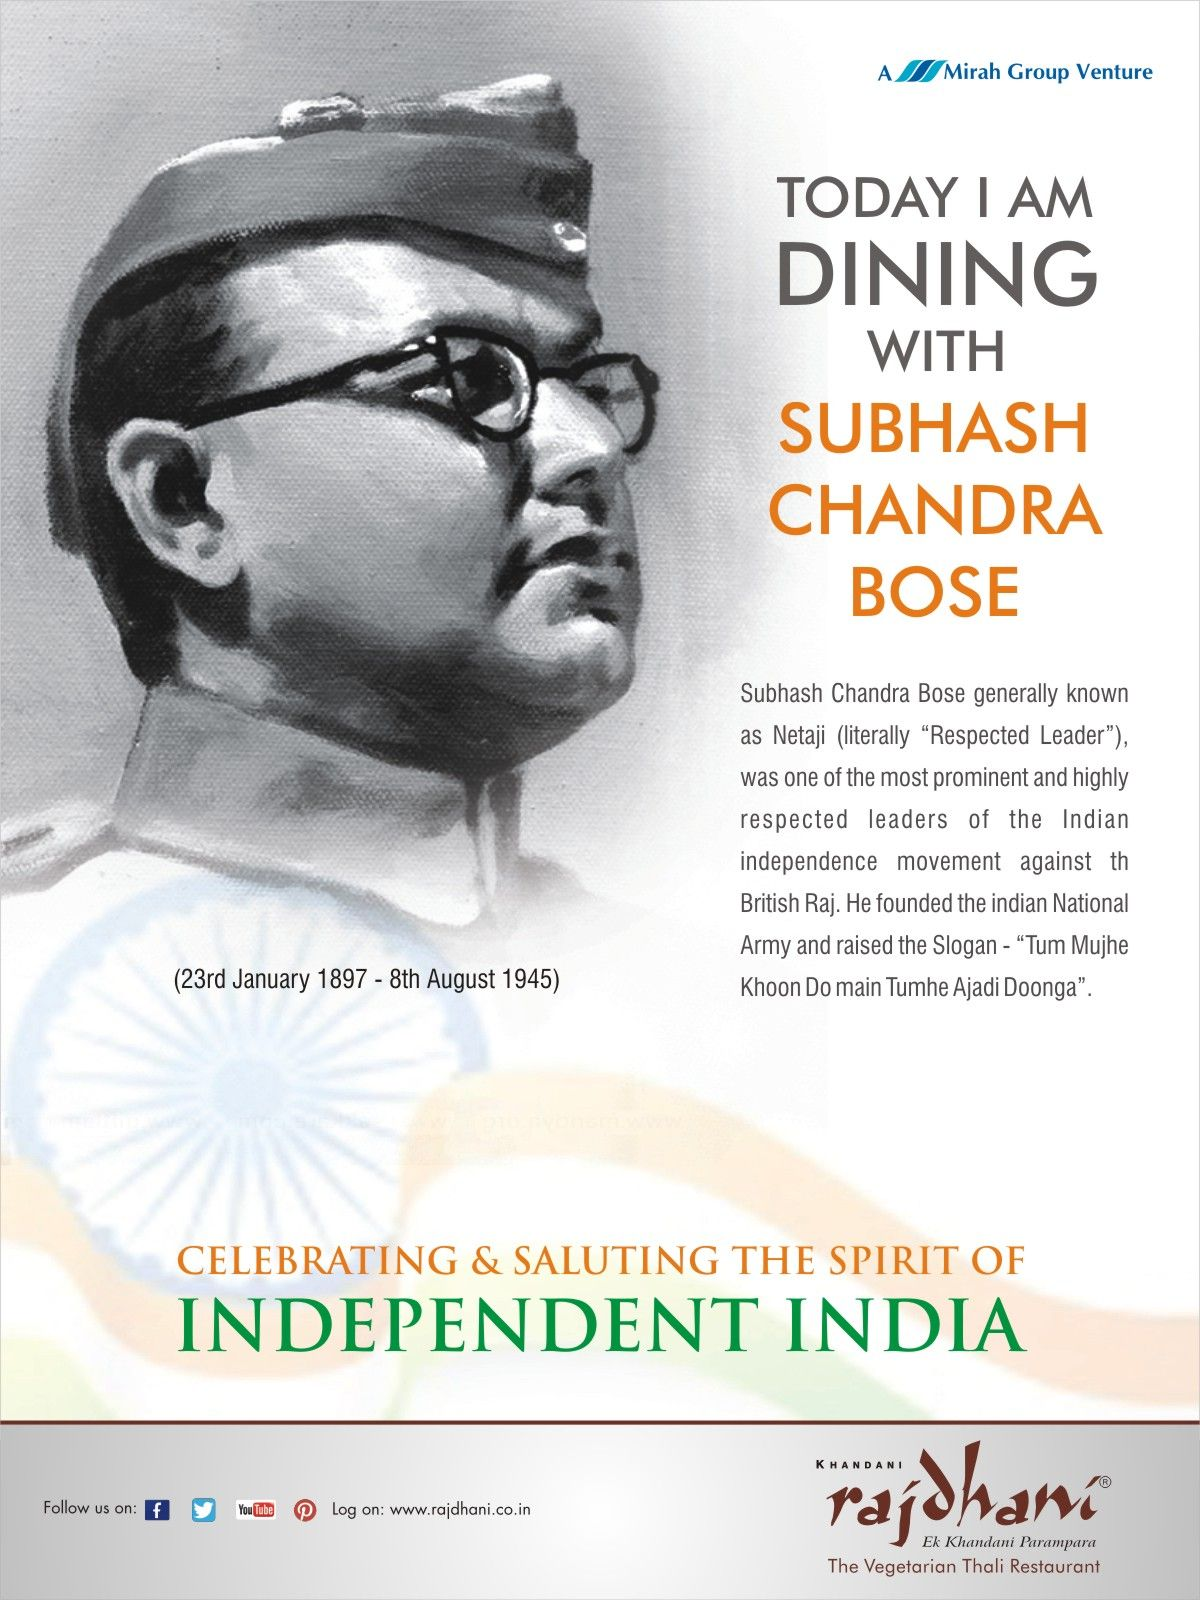 David Foster Wallace Quotes Wallpaper Subhash Chandra Bose Generally Known As Netaji Was One Of